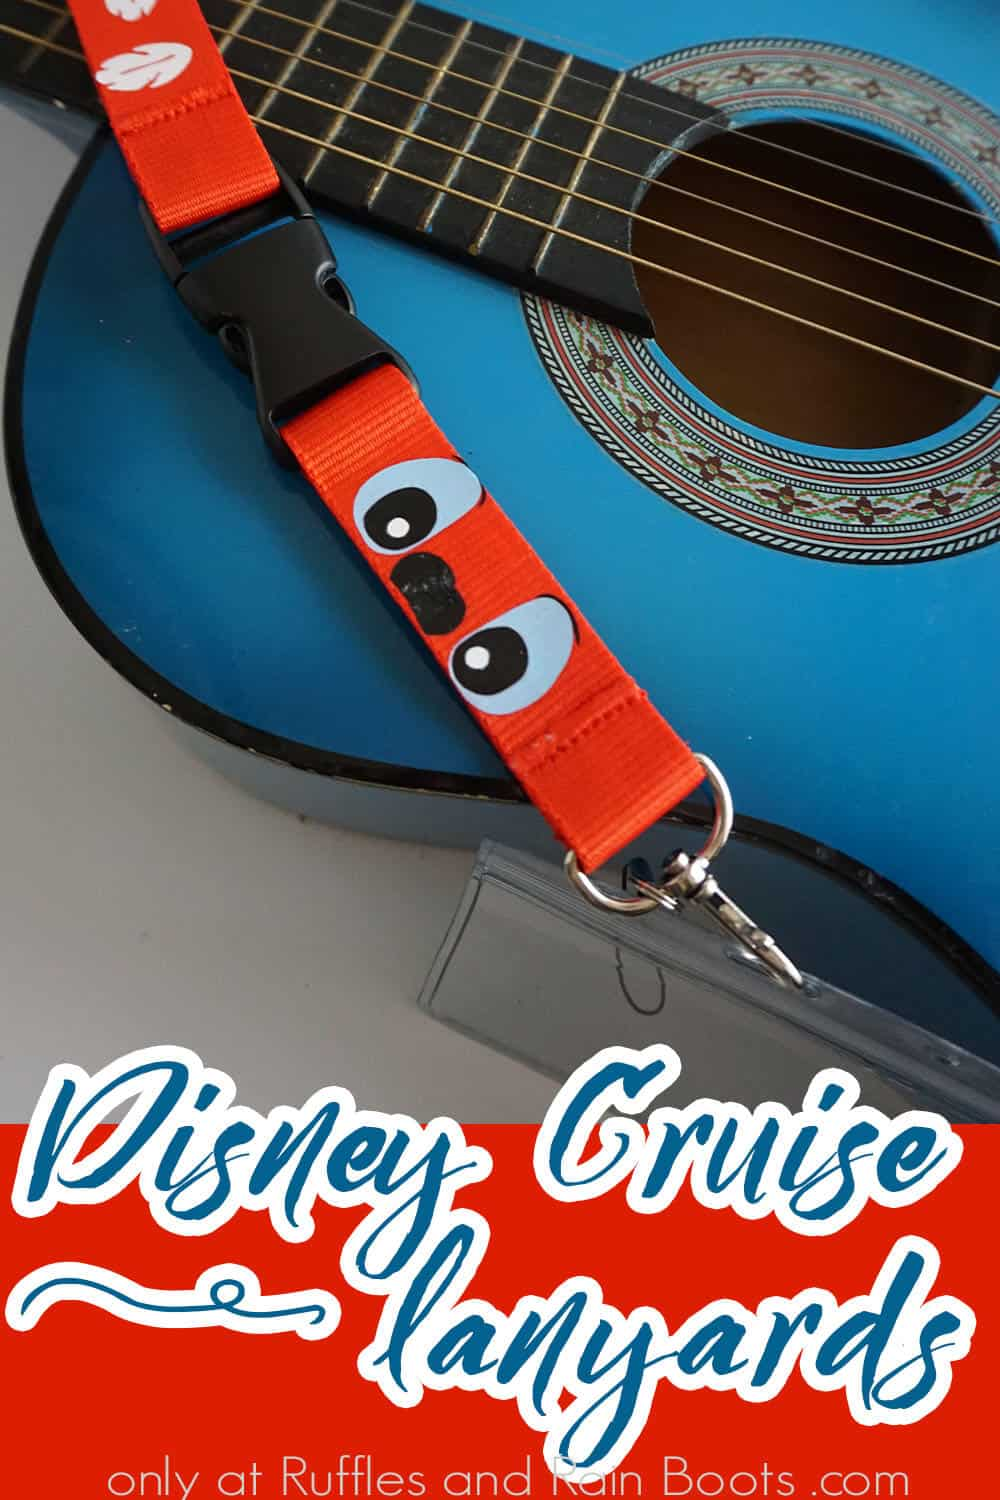 diy fish extender gift cruise craft with text which reads disney cruise lanyards